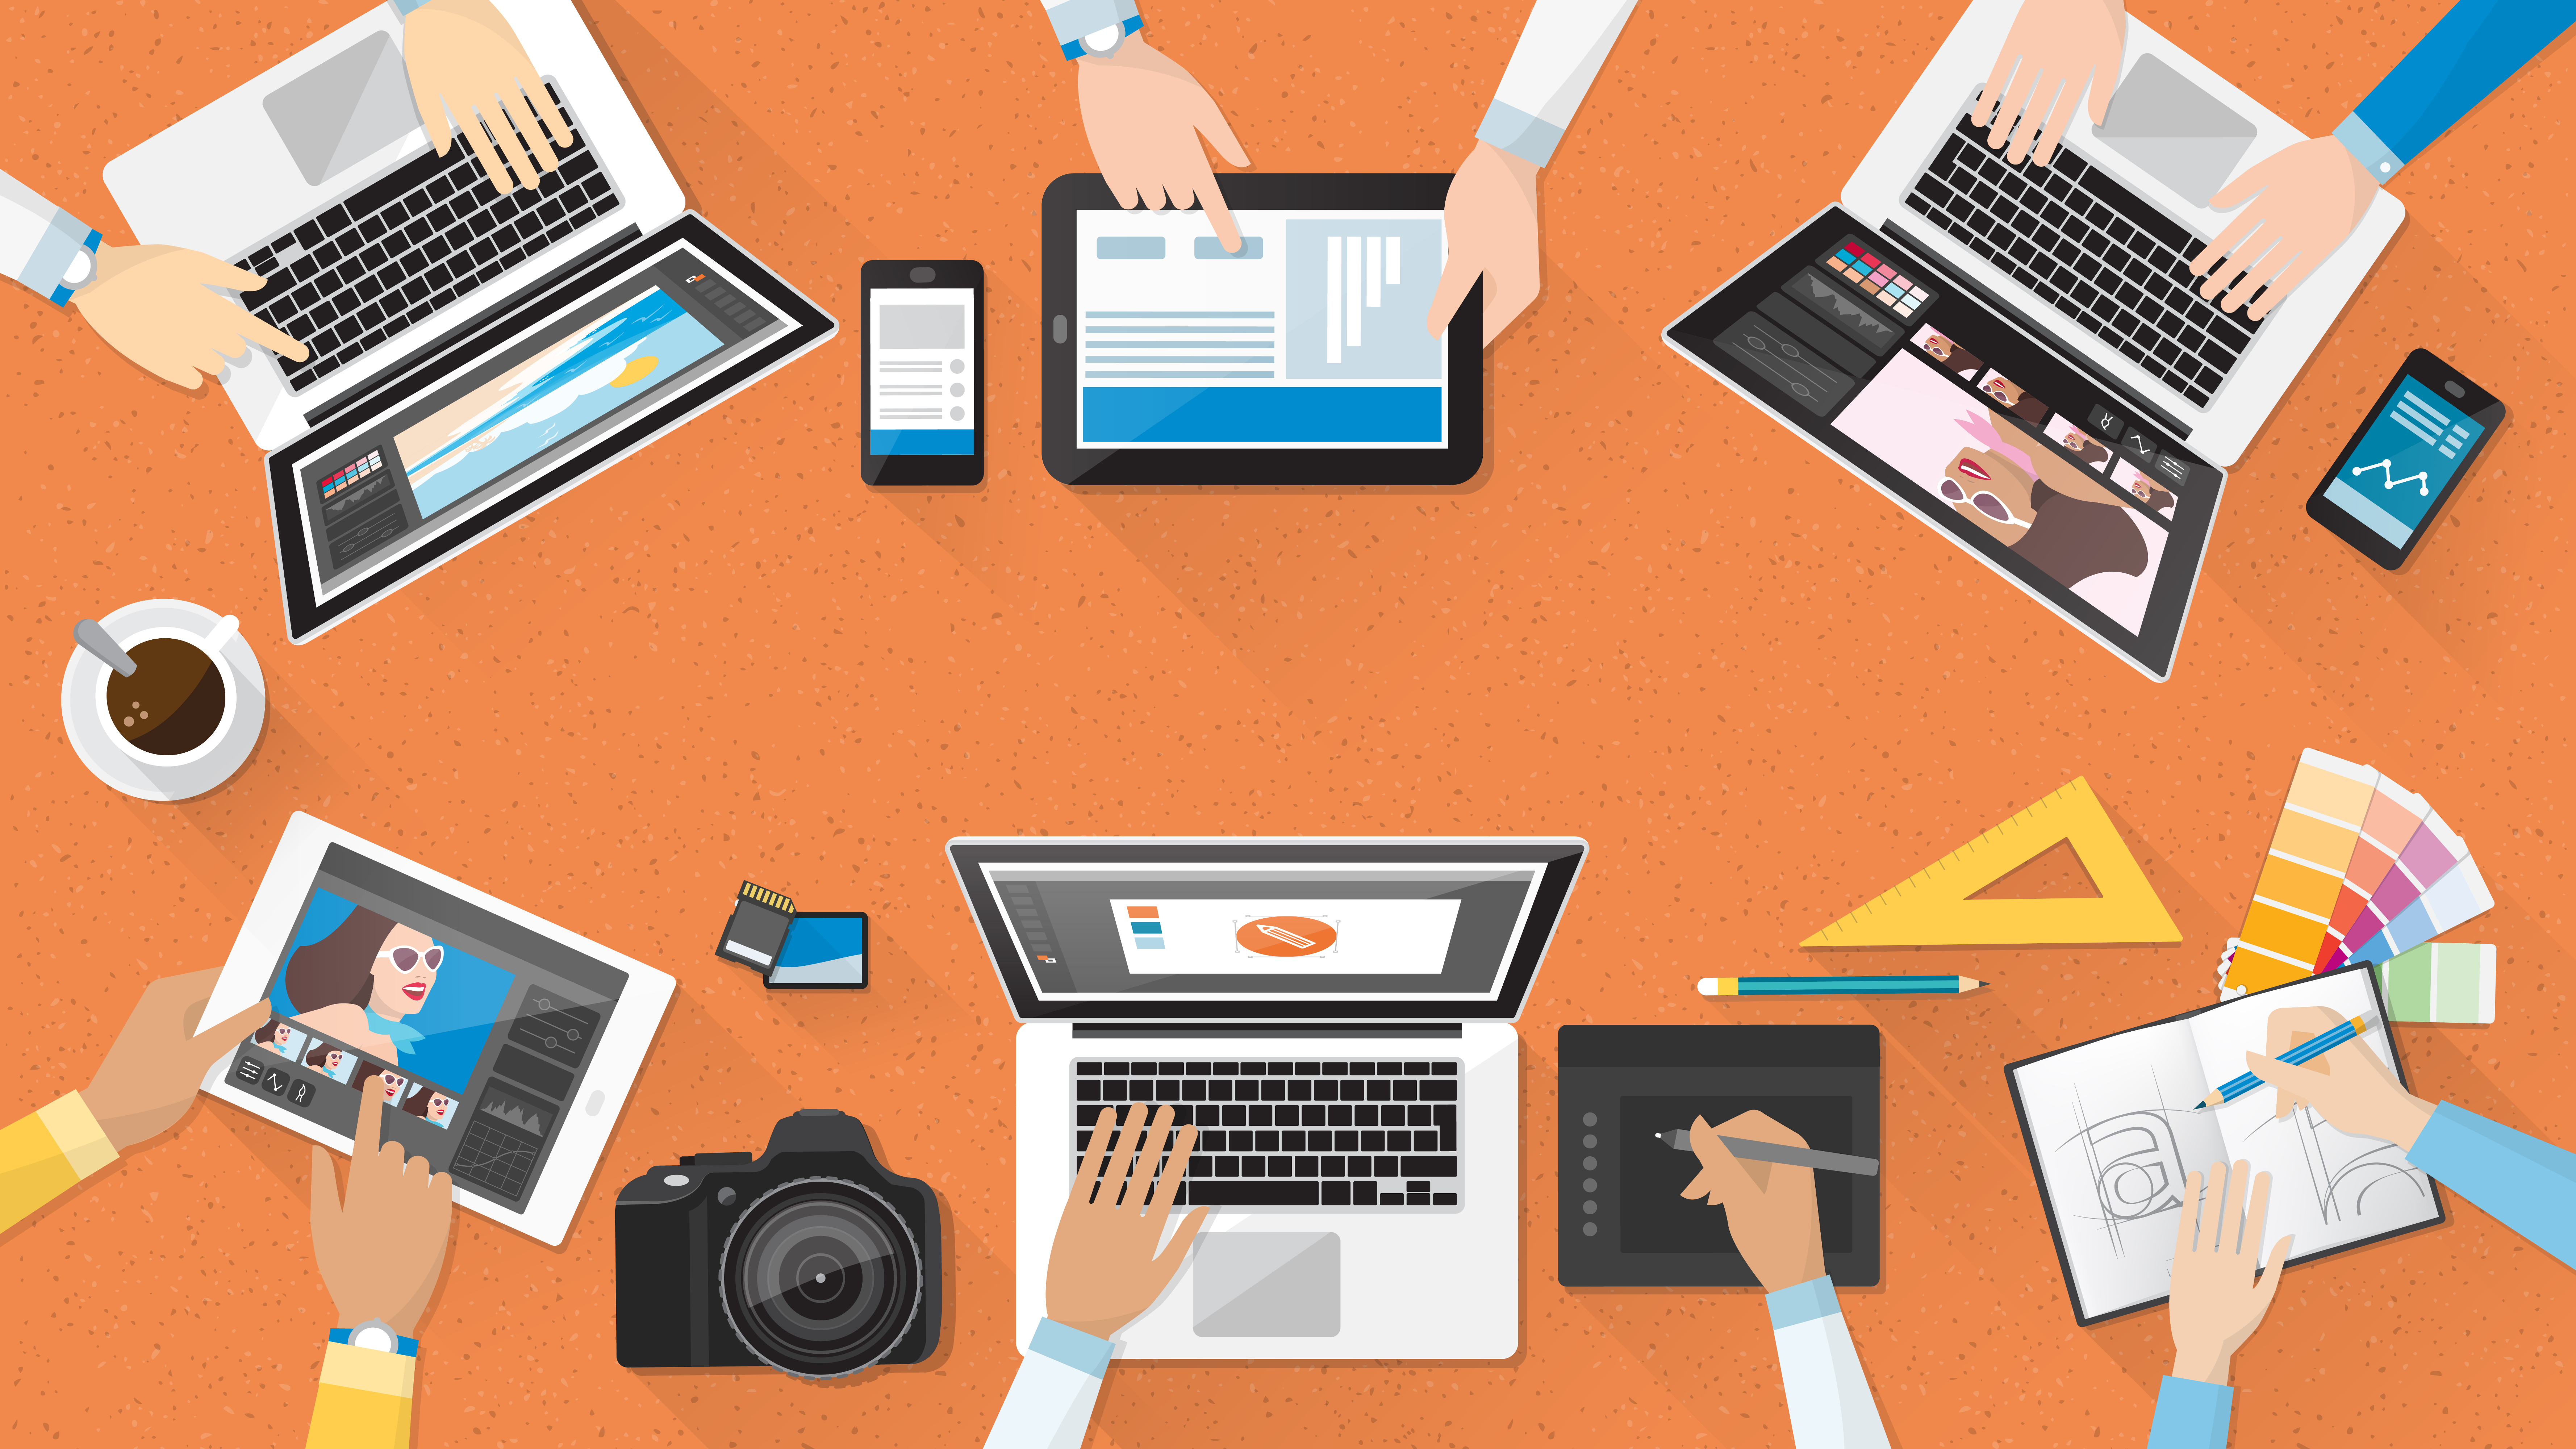 Group of Marketers Illustration